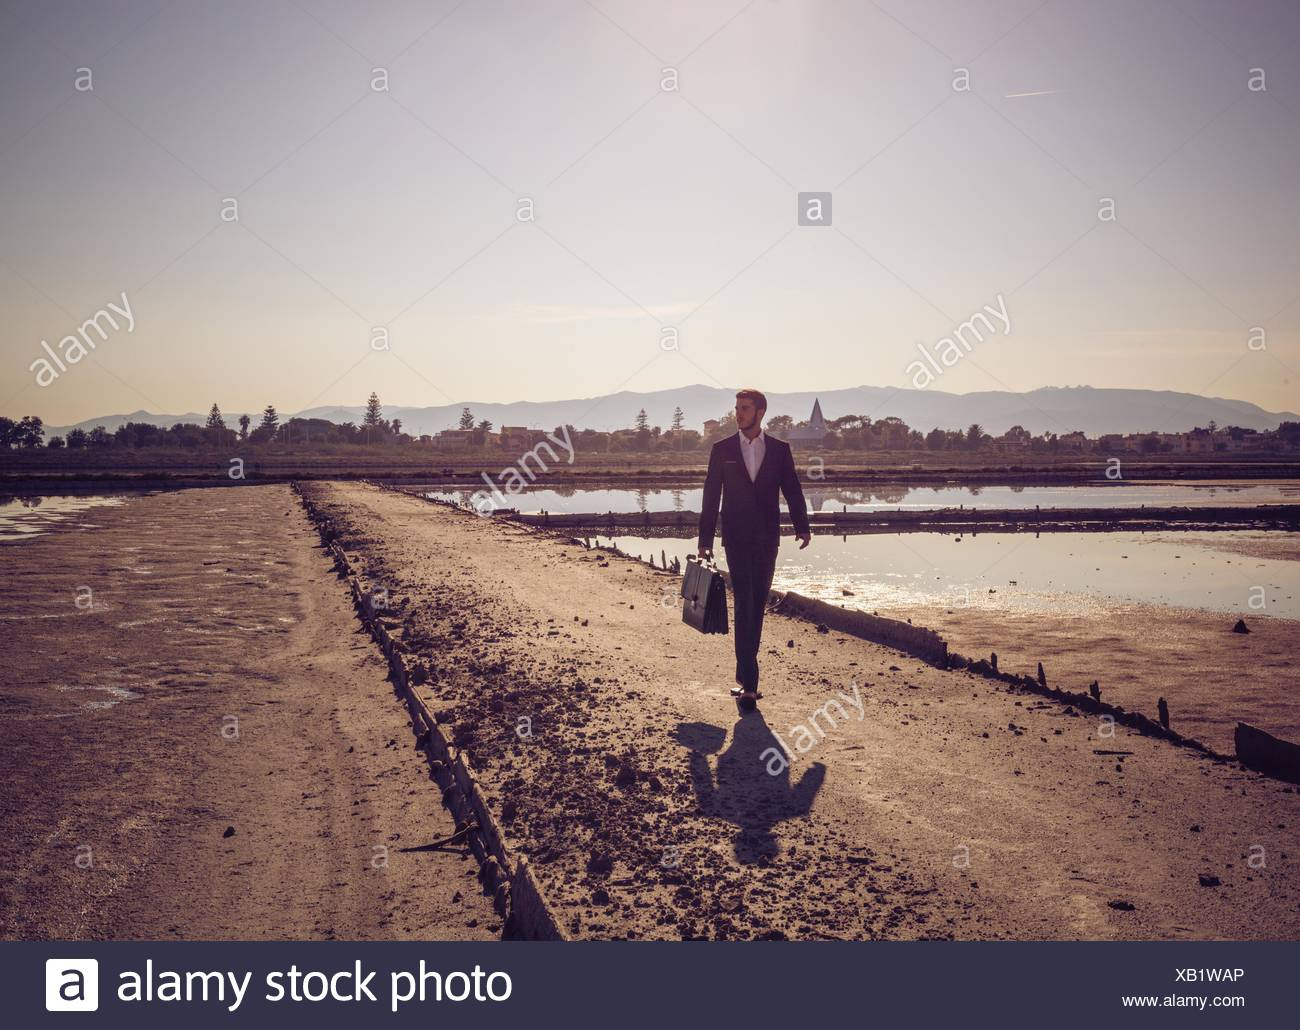 Mid adult businessman carrying briefcase walking along beach Photo Stock